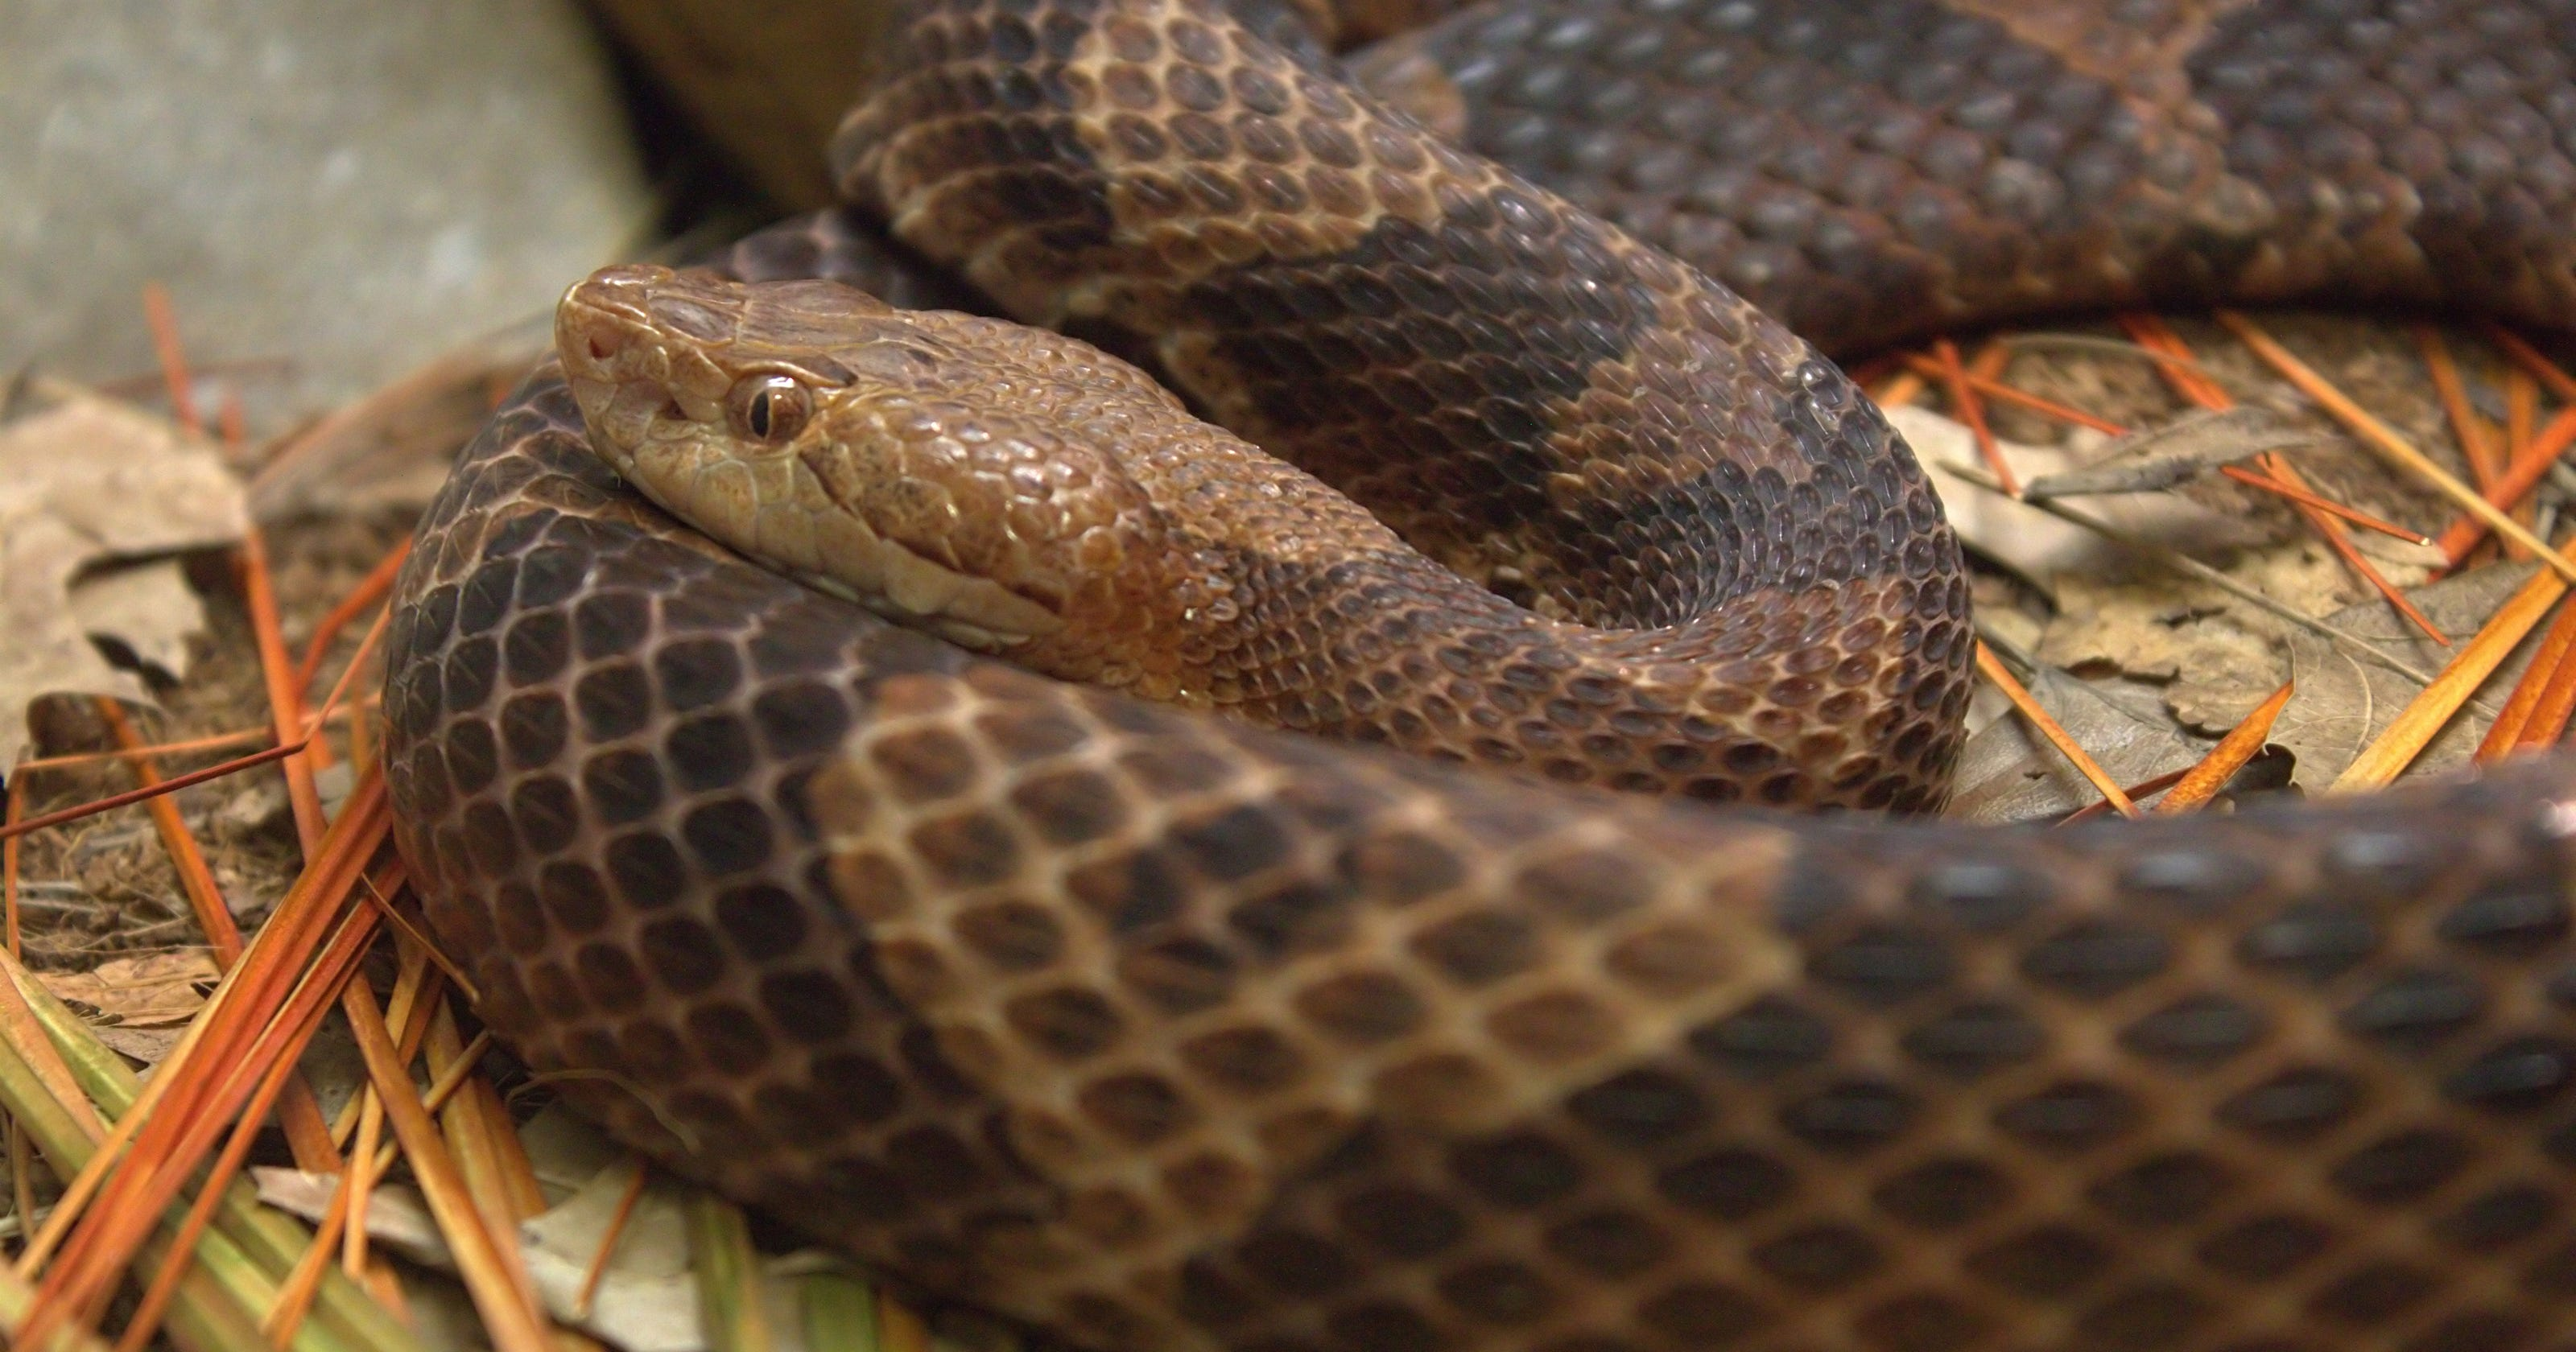 What you need to know about copperhead snakes in Indiana